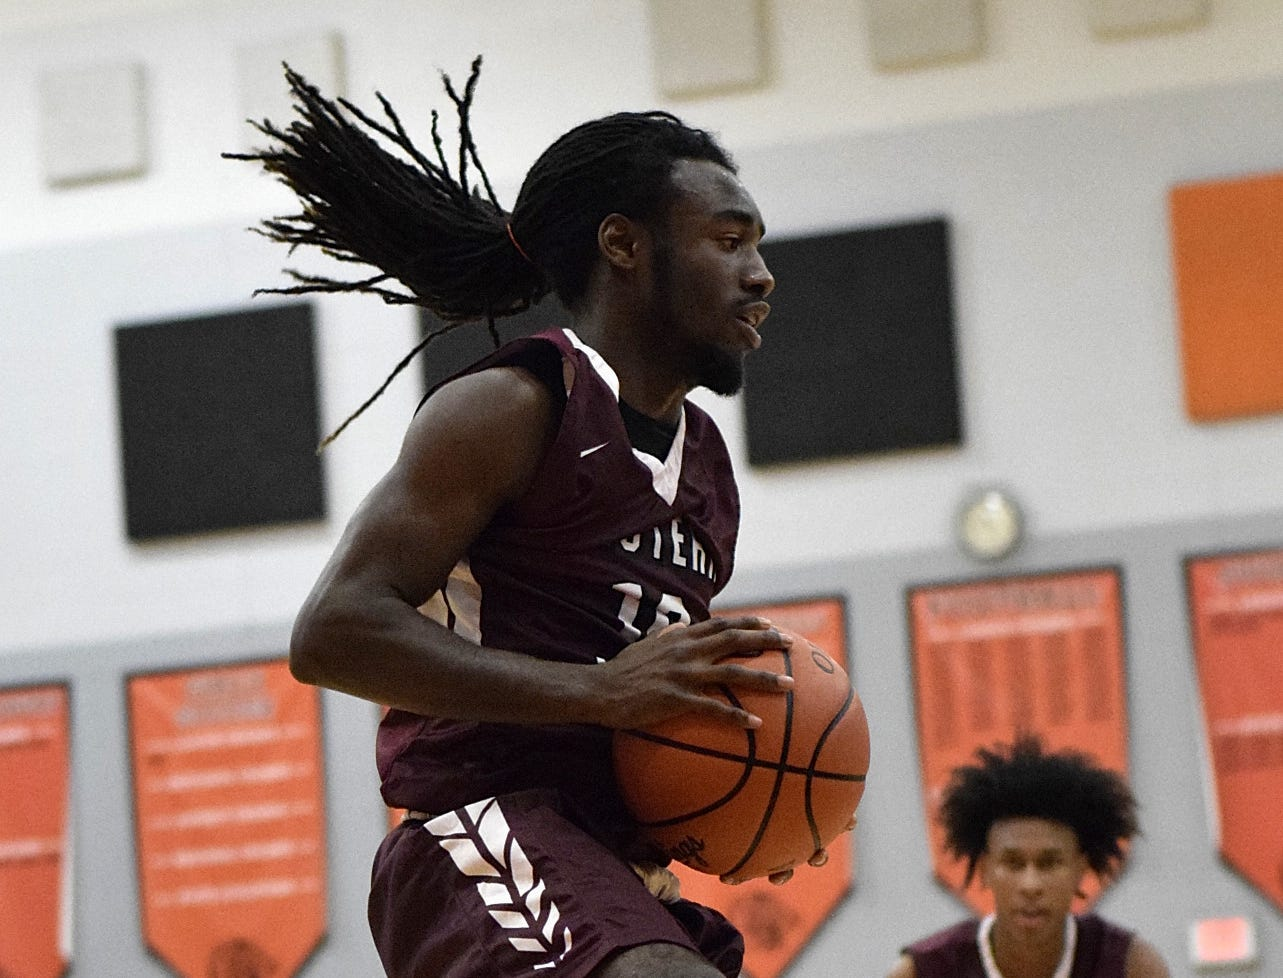 Zion Reynolds of Western Hills makes a steal for the Mustangs, Nov. 30, 2018.